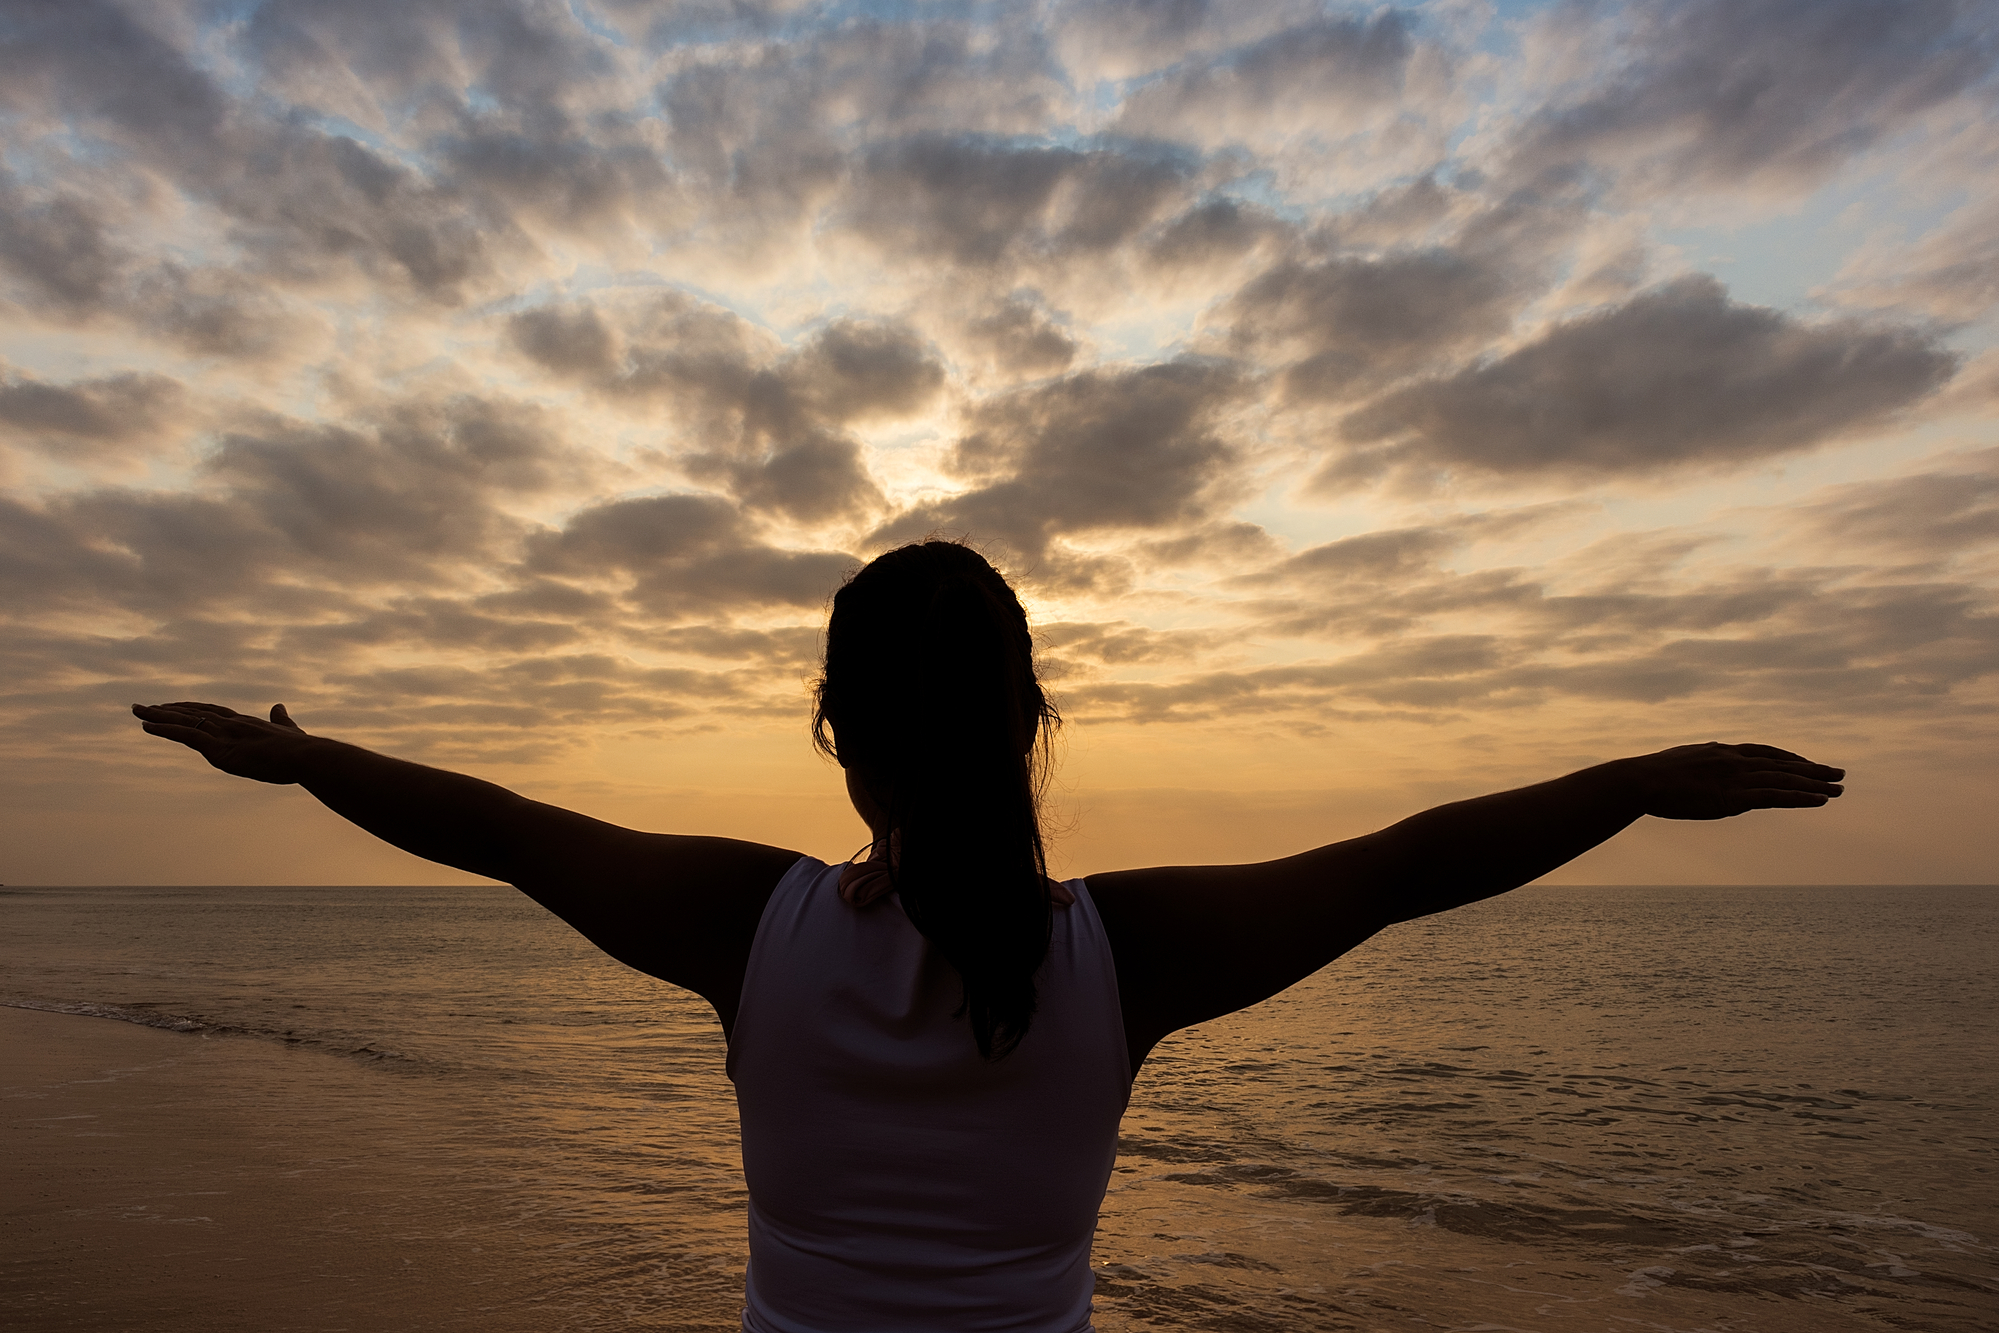 Silouette of woman with hands outstretched against sunset